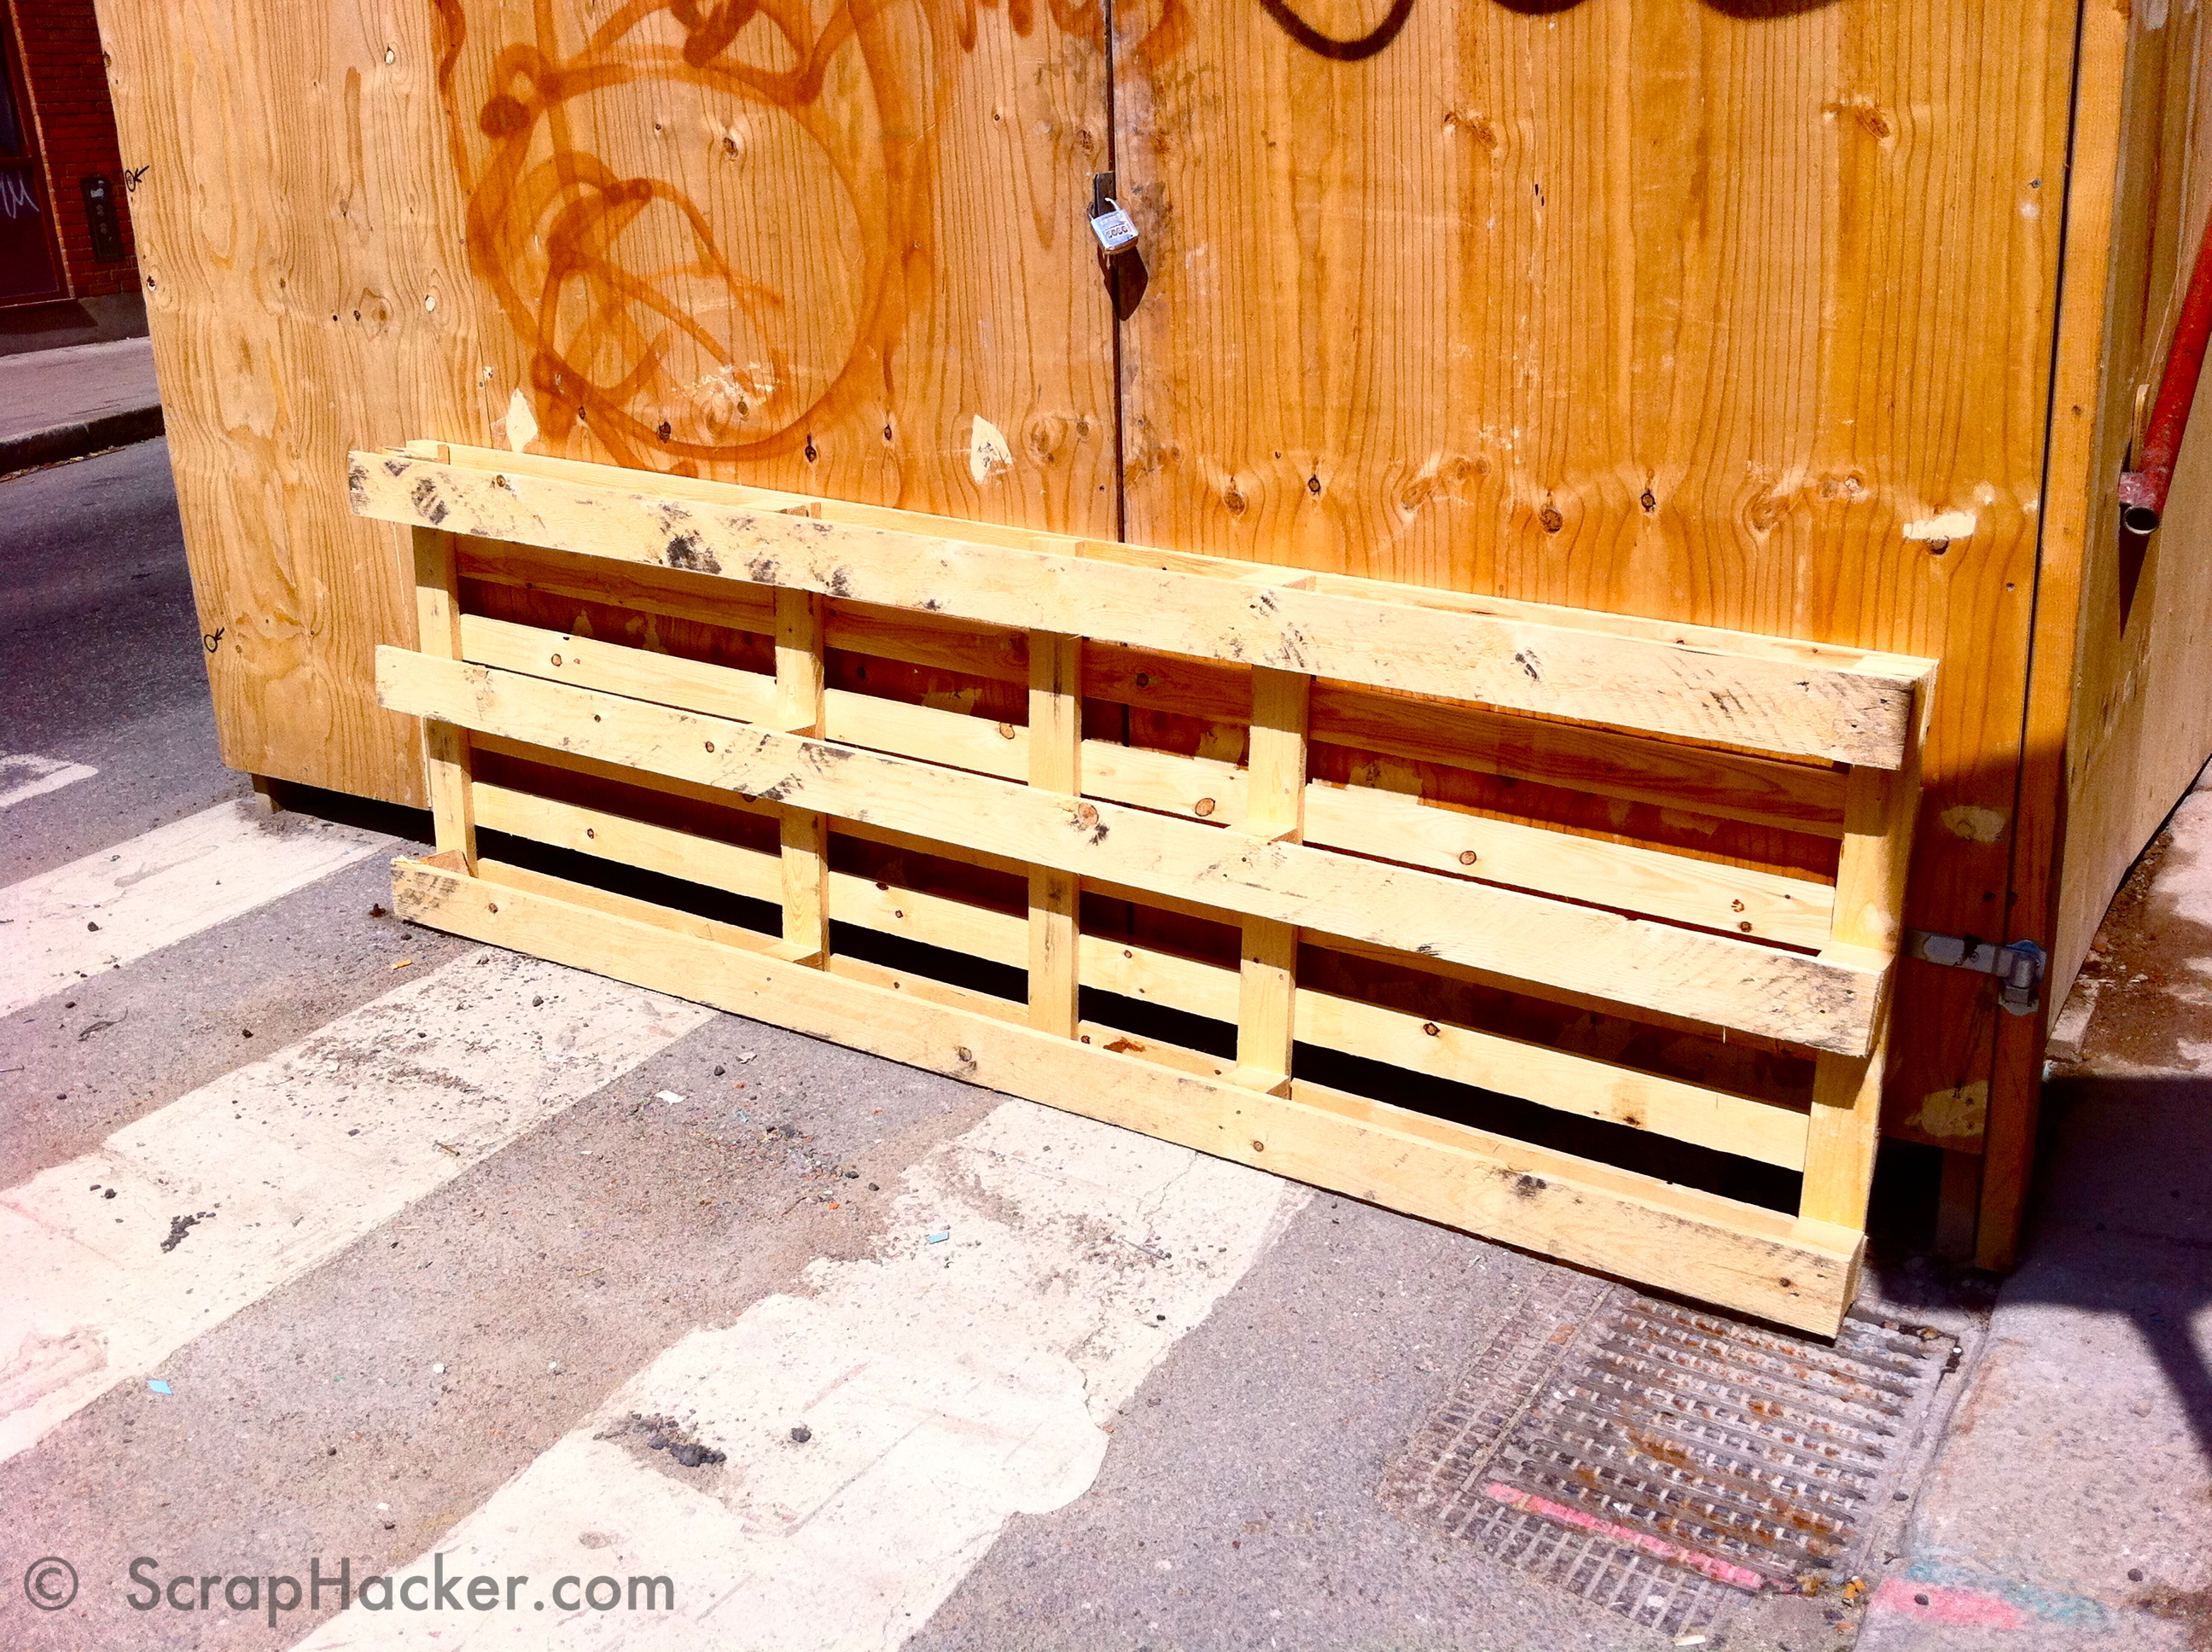 Diy pallet double bed - Step 2